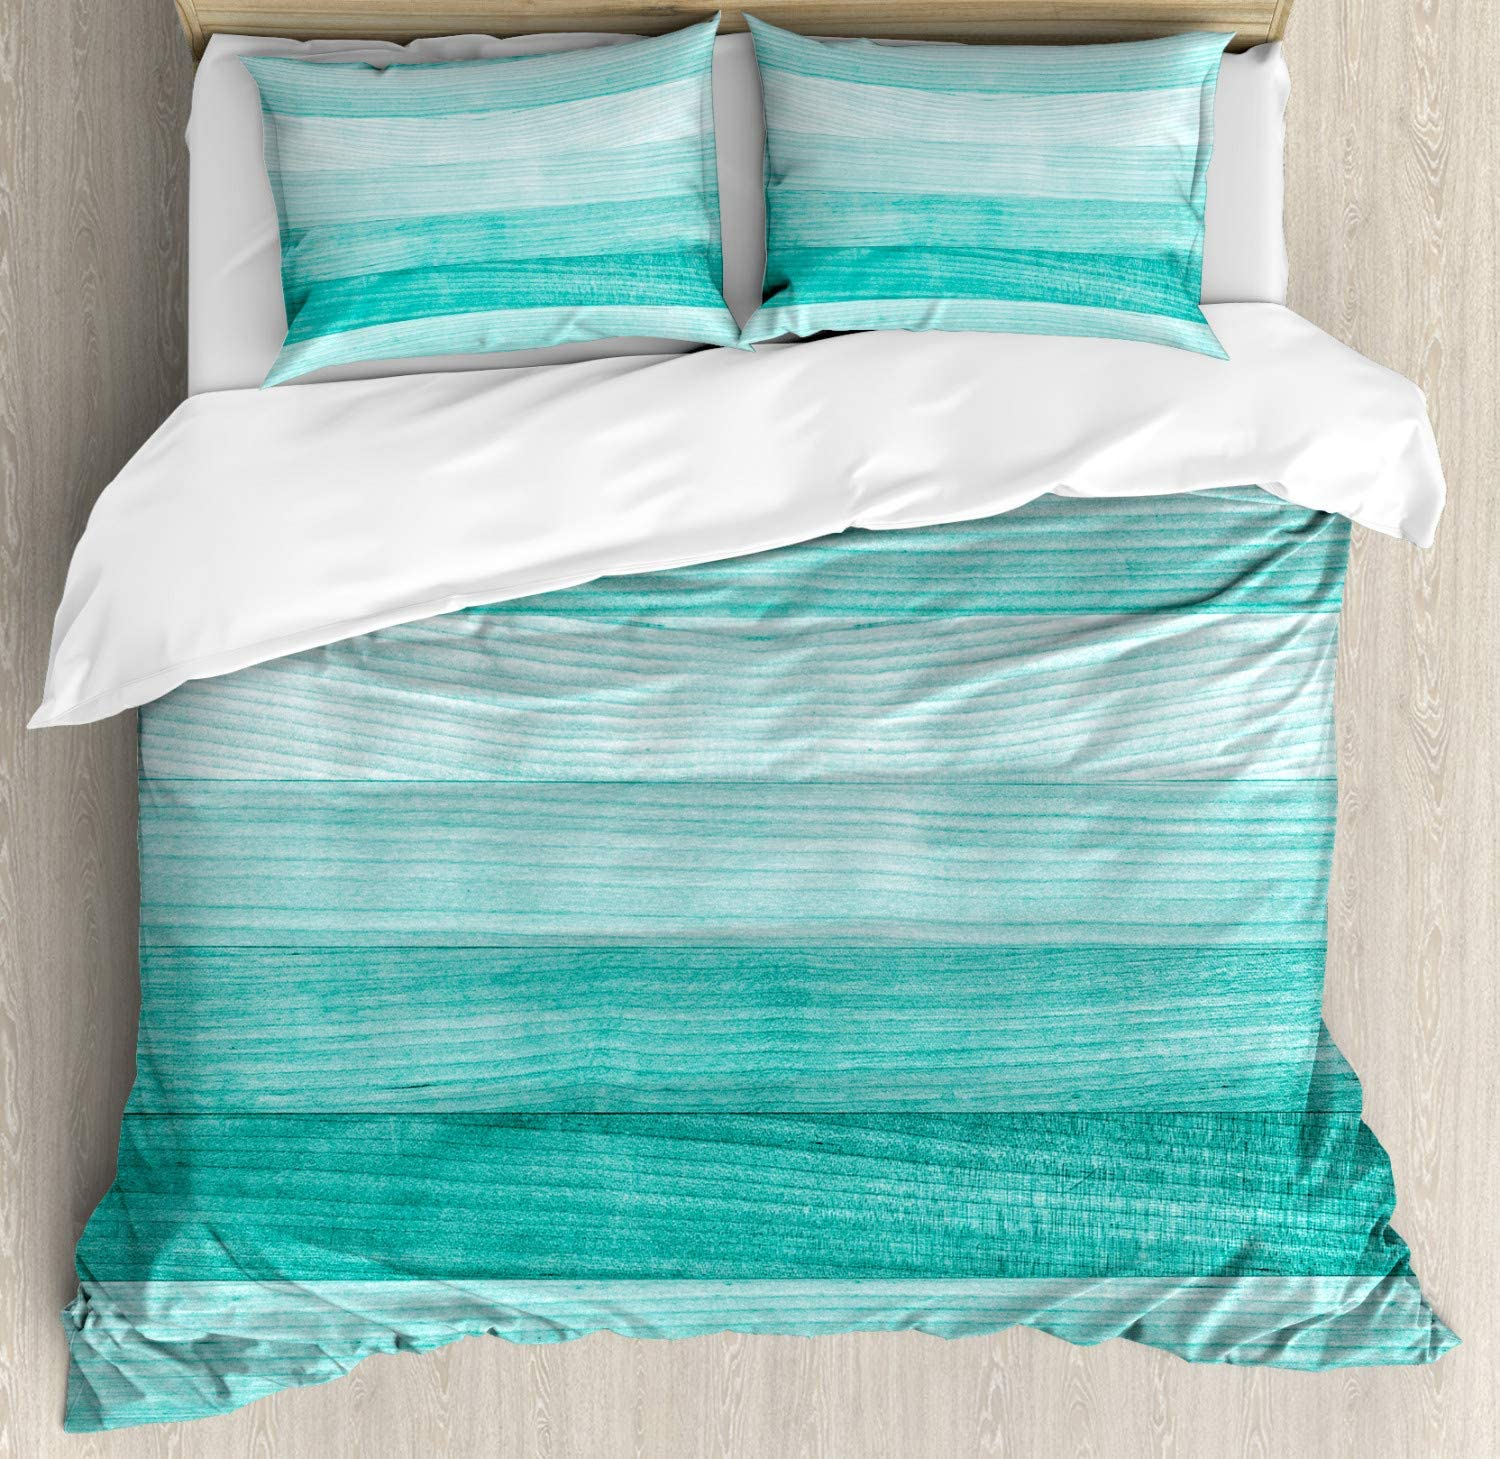 Ambesonne Teal Duvet Cover Set, Painted Wood Board Horizontal Lines Birthdays Easter Holiday Print Backdrop Image, Decorative 3 Piece Bedding Set with 2 Pillow Shams, Queen Size, Turquoise